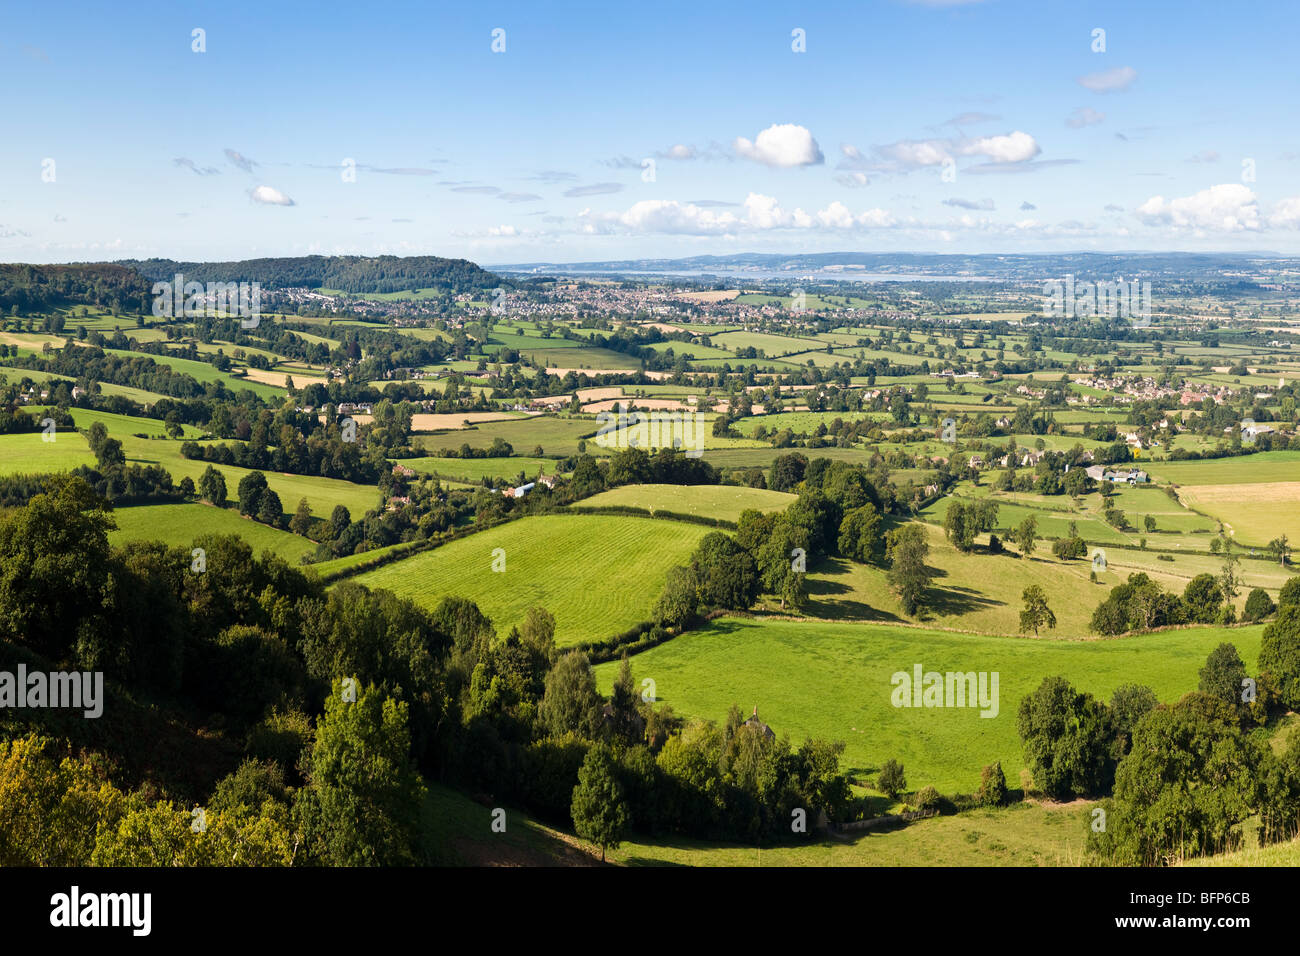 A view of Cam, Dursley and Coaley in the Severn Vale viewed from the Cotswold scarp at Coaley Peak Picnic Site, - Stock Image